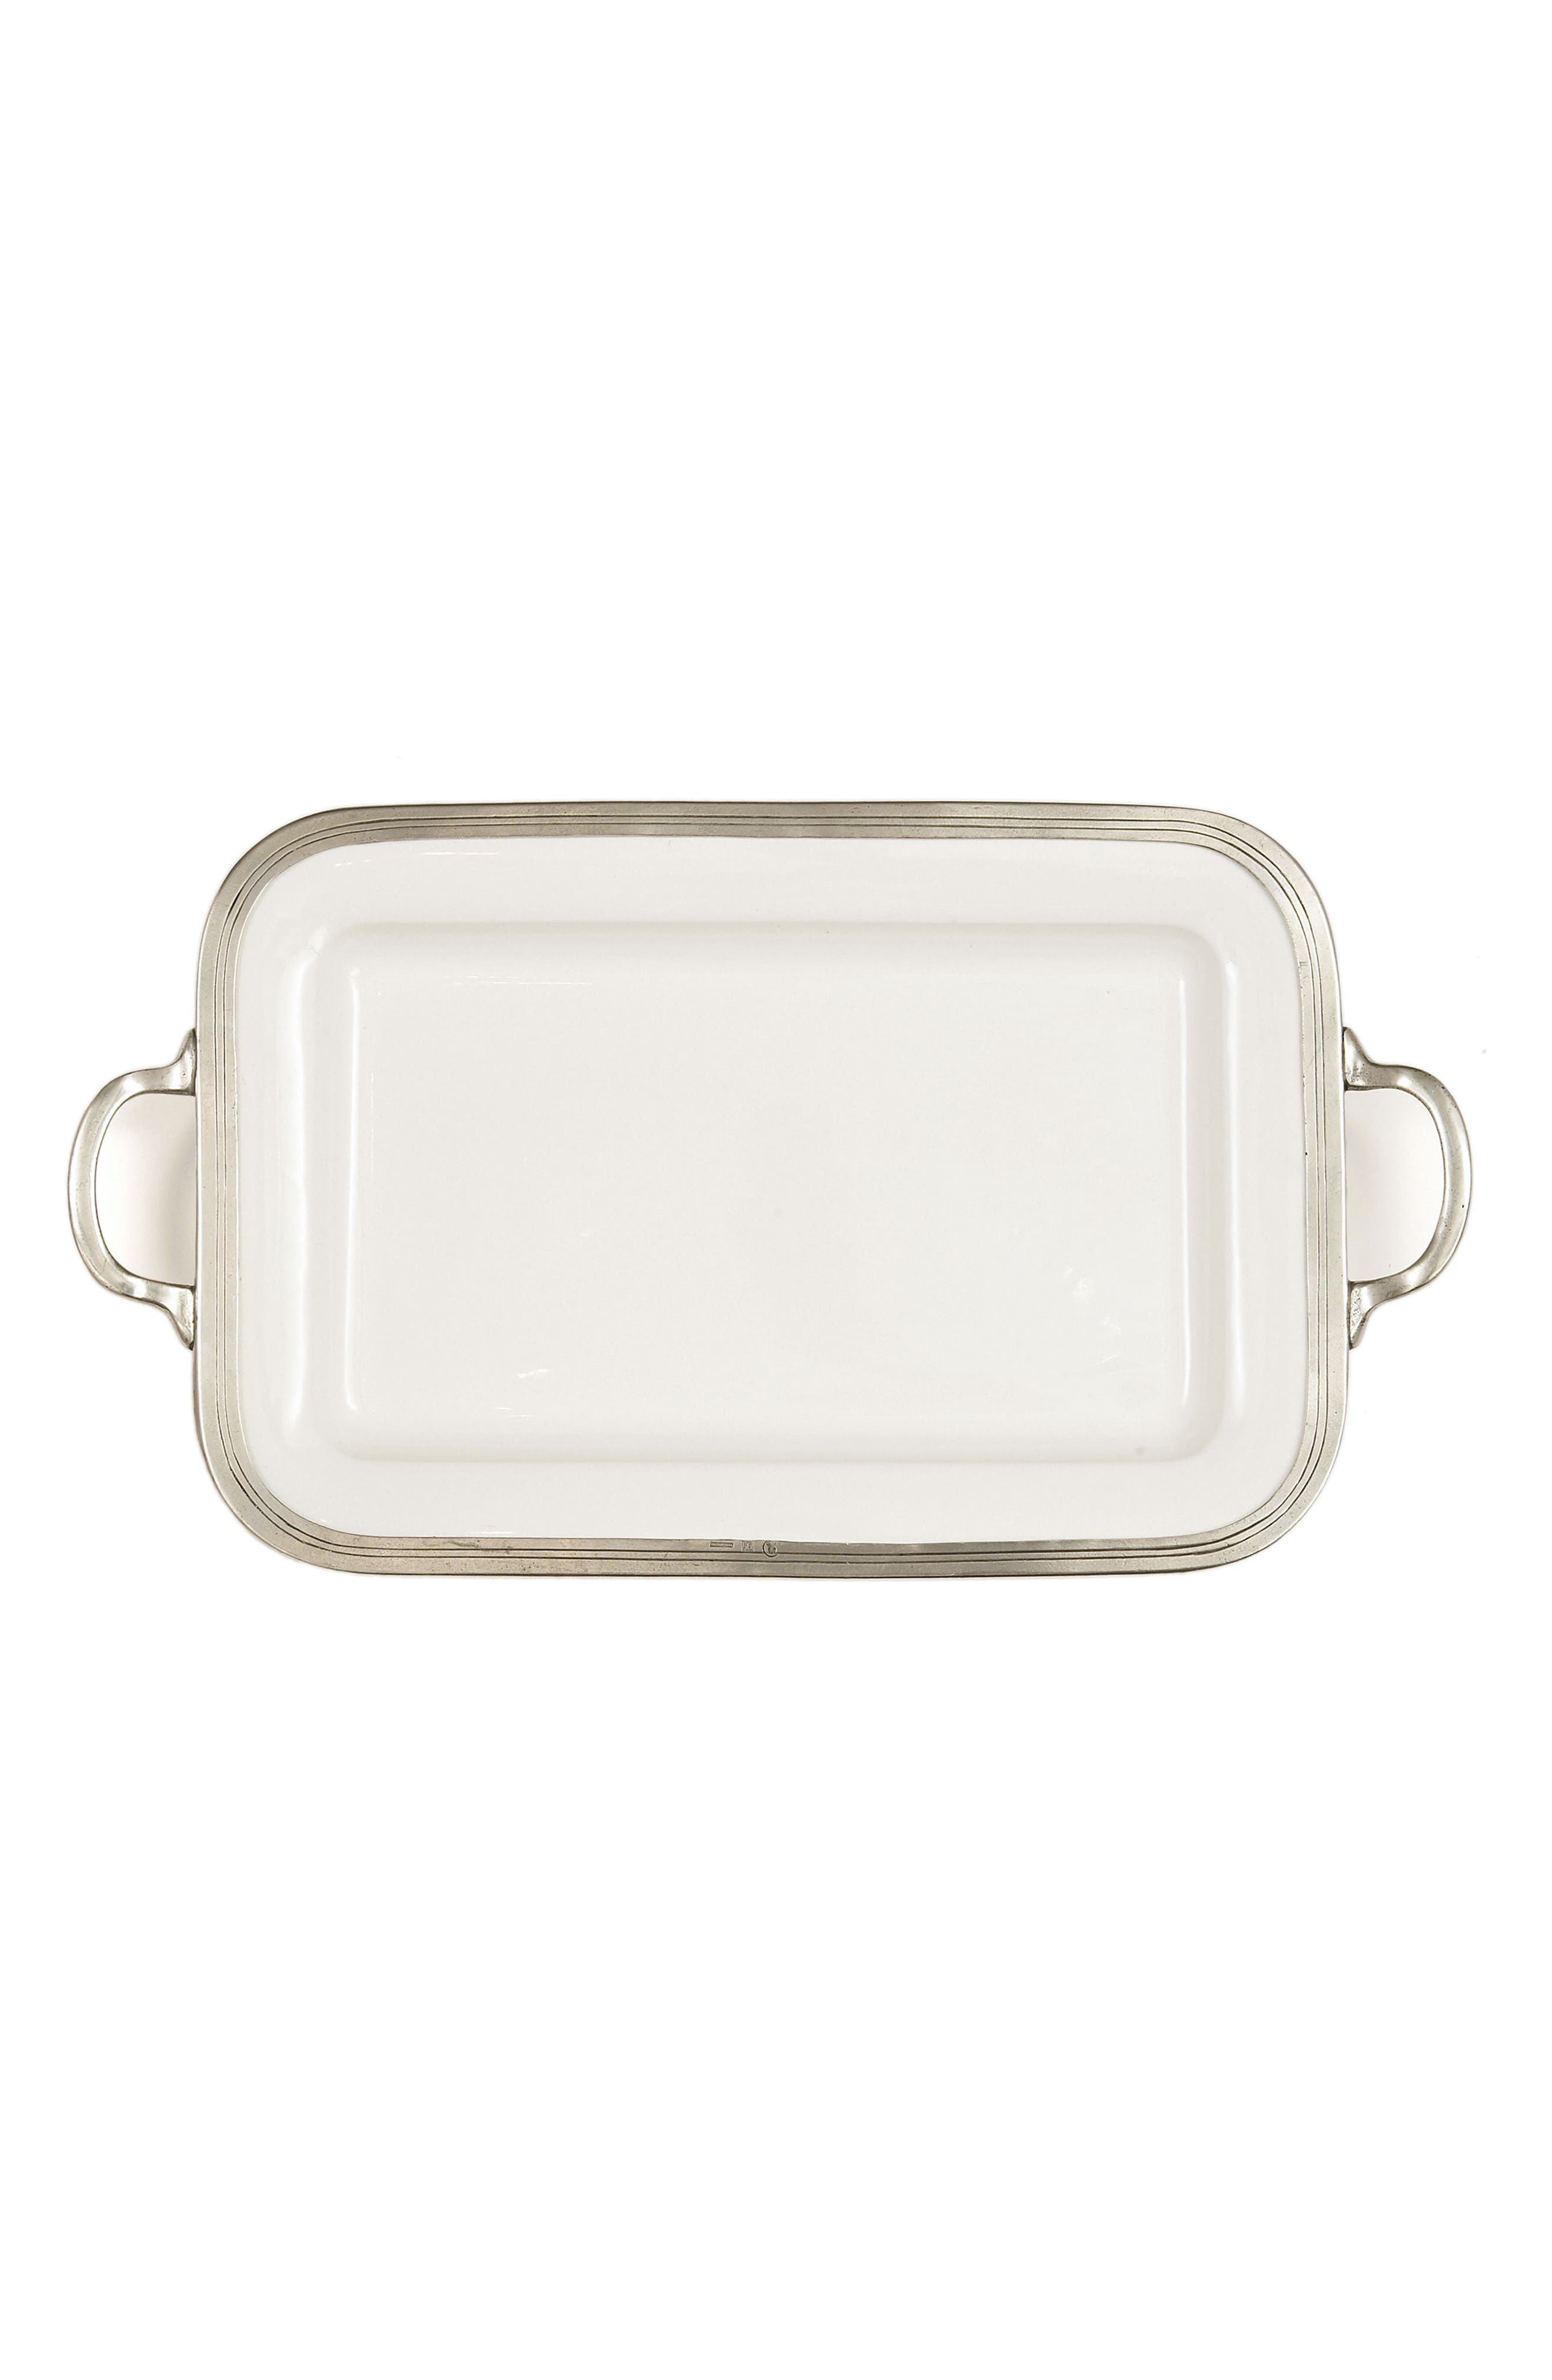 Tuscan Rectangular Serving Tray,                         Main,                         color, White